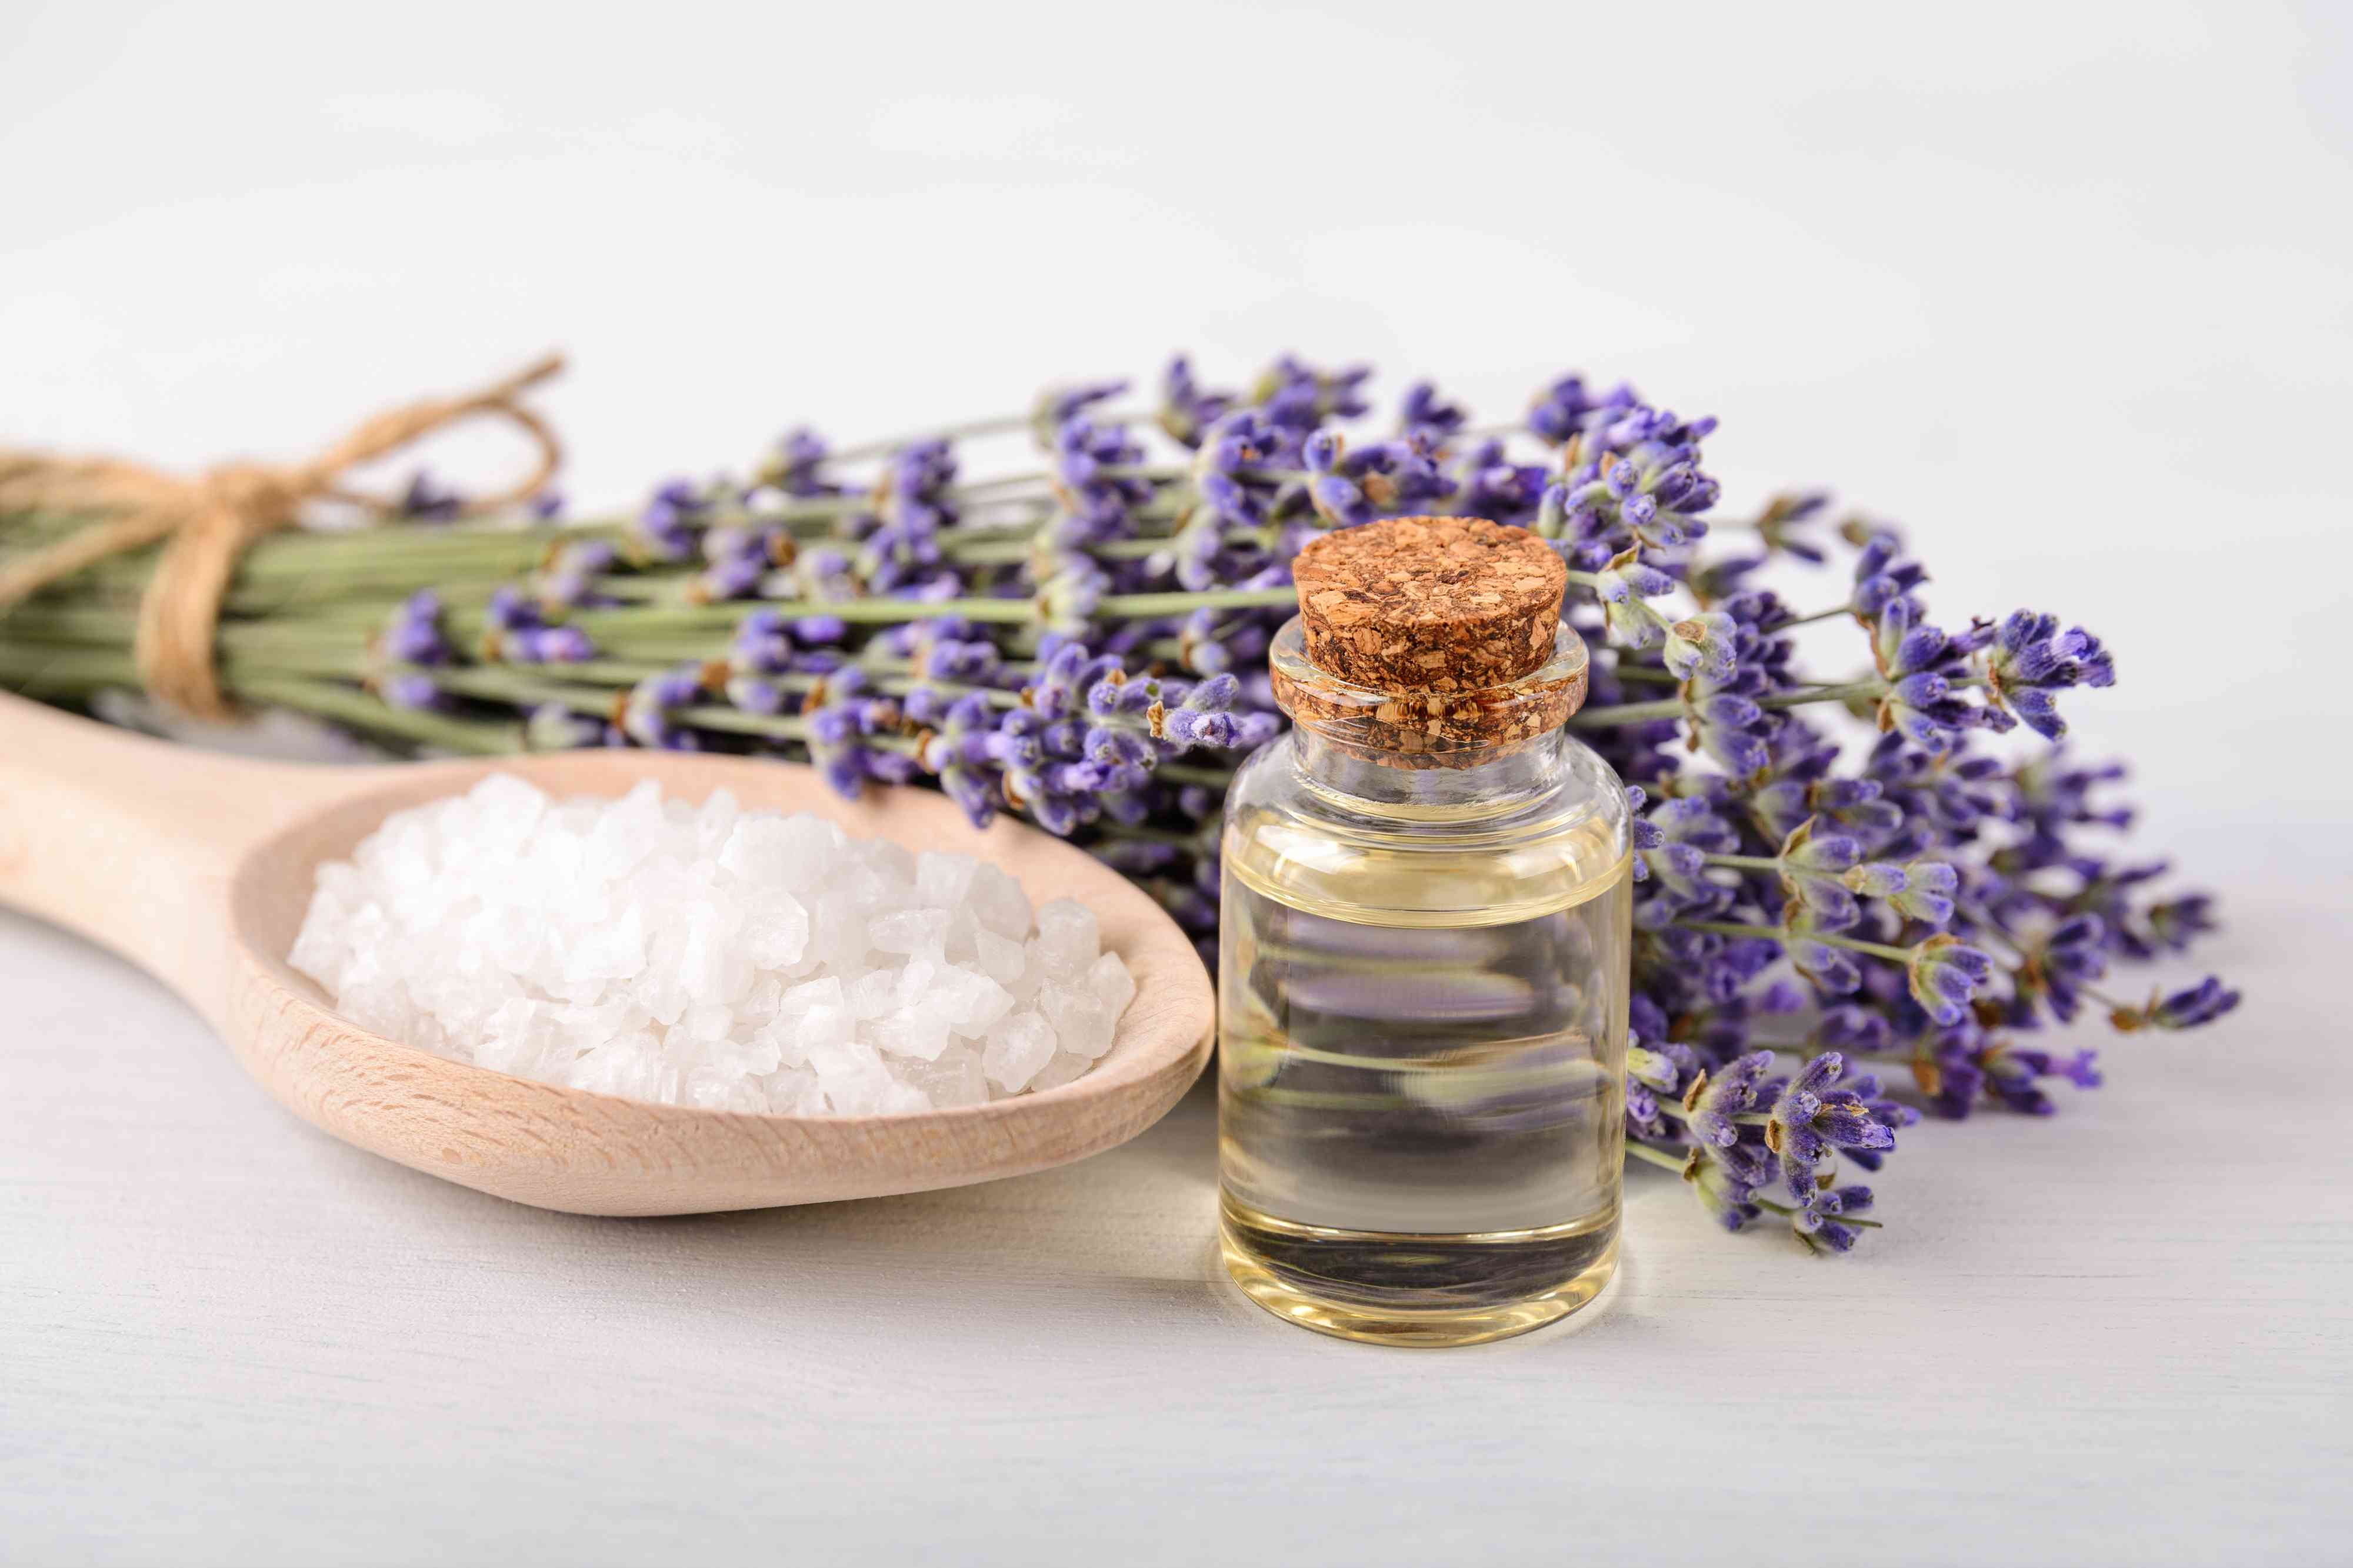 Lavender essential oil, cosmetic bath salt in a wood spoon and fresh fragrant lavender on a white wood surface. Home made spa, skincare and cosmetology concept.